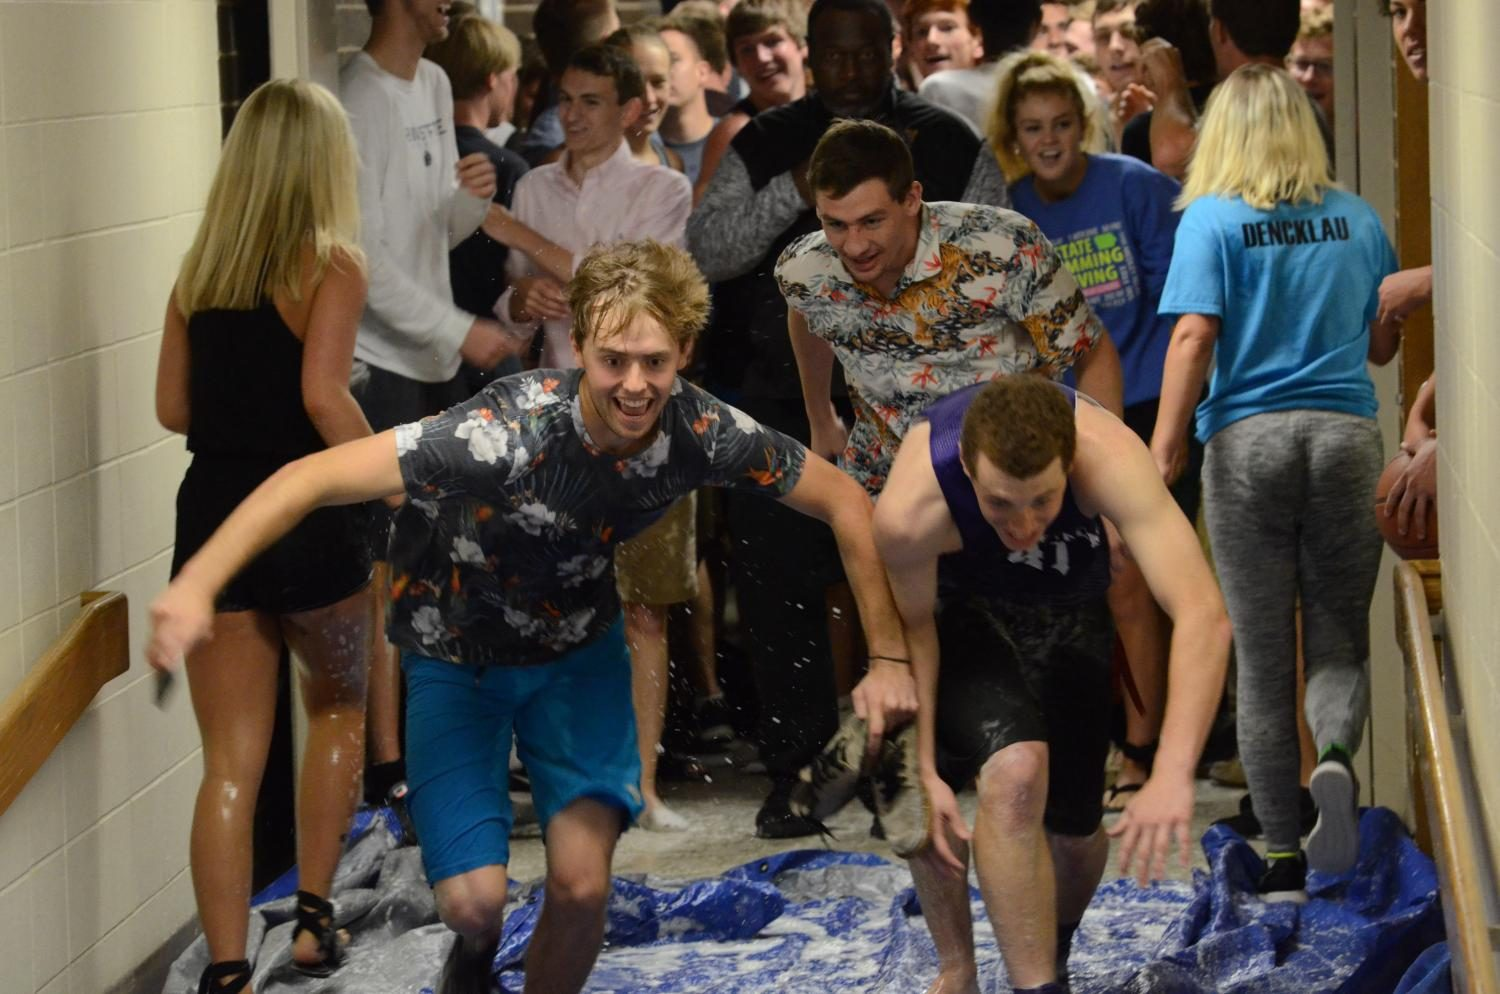 [Left to right] Nate Blanchard '17, Drew Decker '17 and Jack Dreyer '17 slide down together. Seniors used water bottles and soap to make the tarp slippery as their senior prank May 25.